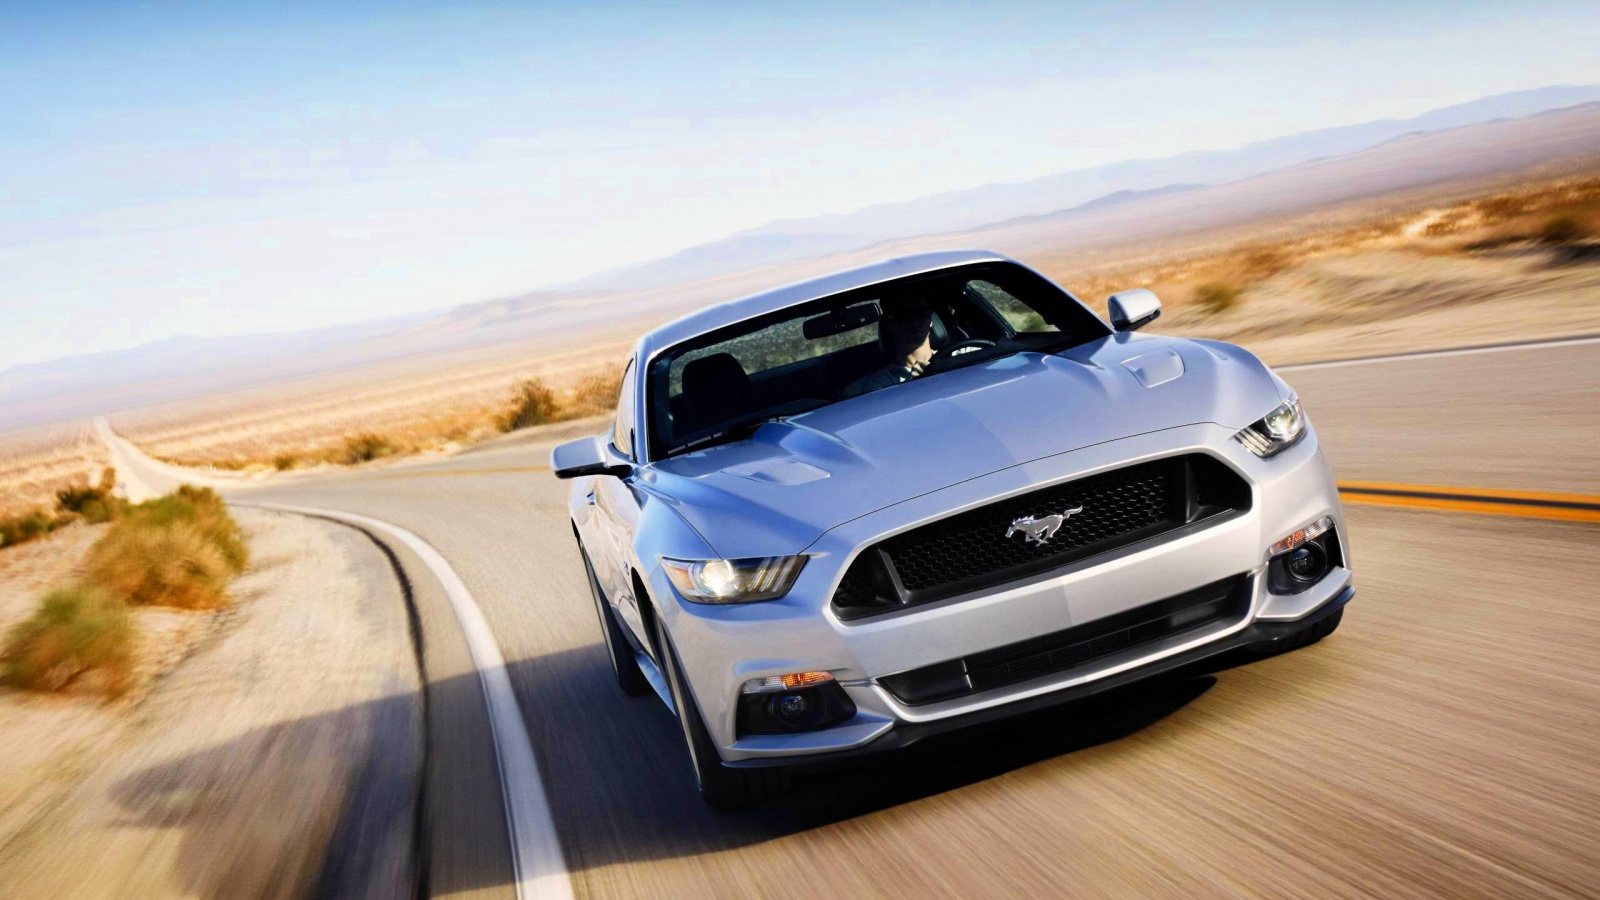 ford mustang gt 2015 wallpapers 1600x900 359843. Black Bedroom Furniture Sets. Home Design Ideas